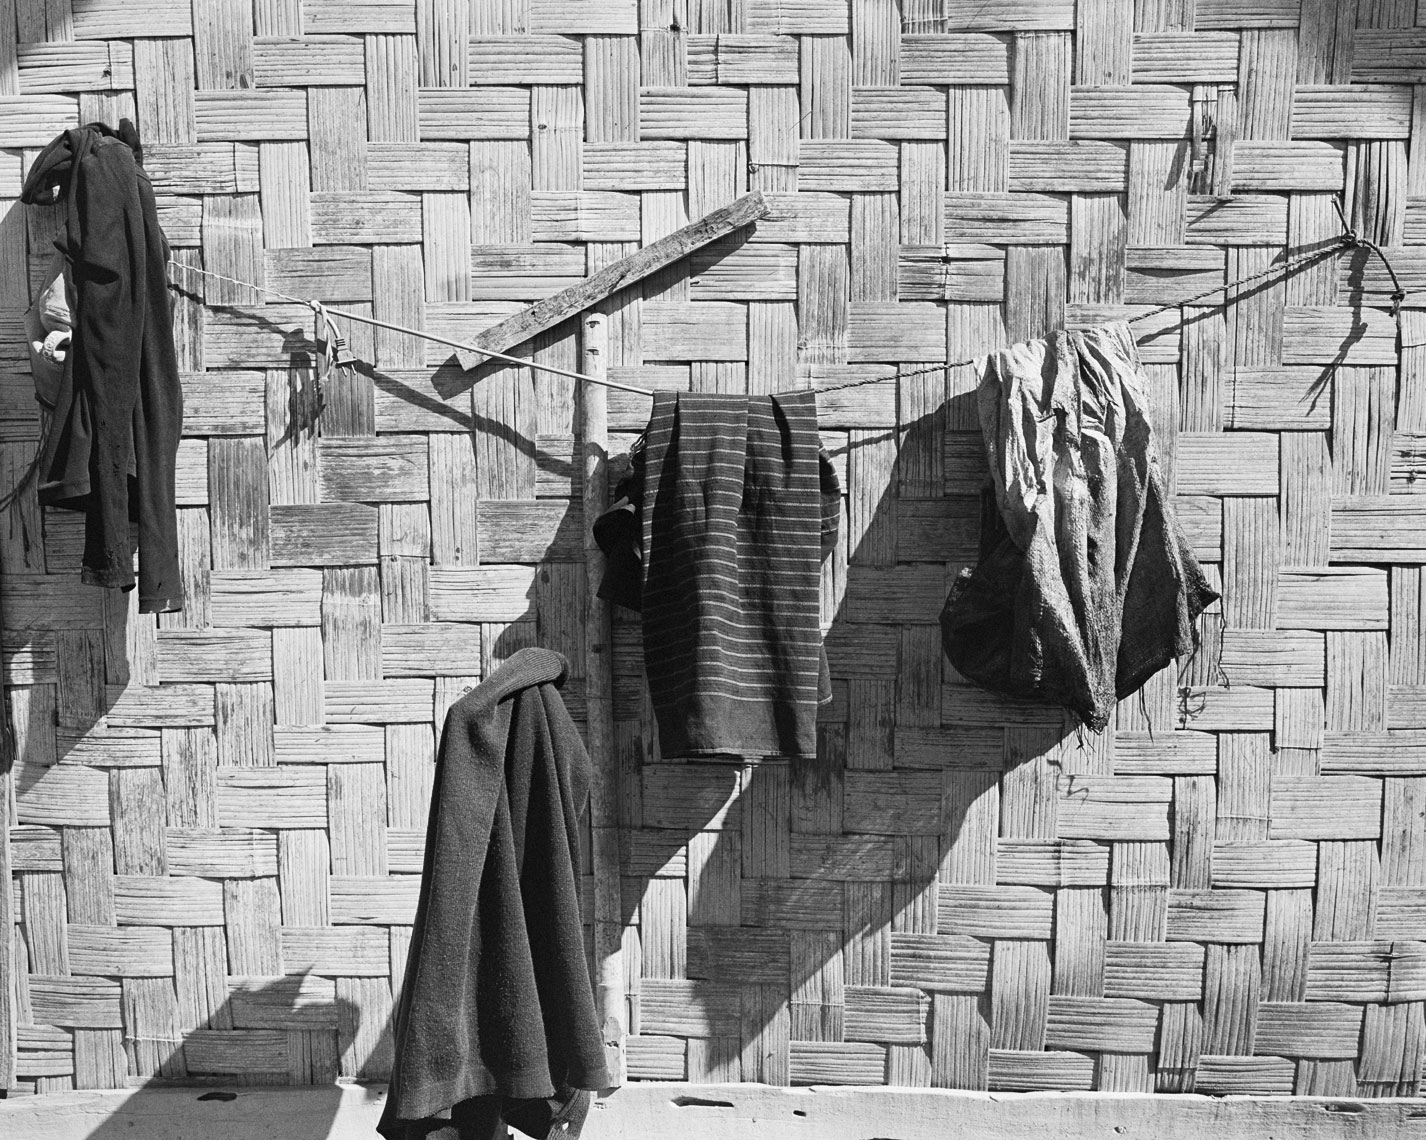 Bamboo-wall-with-clothes